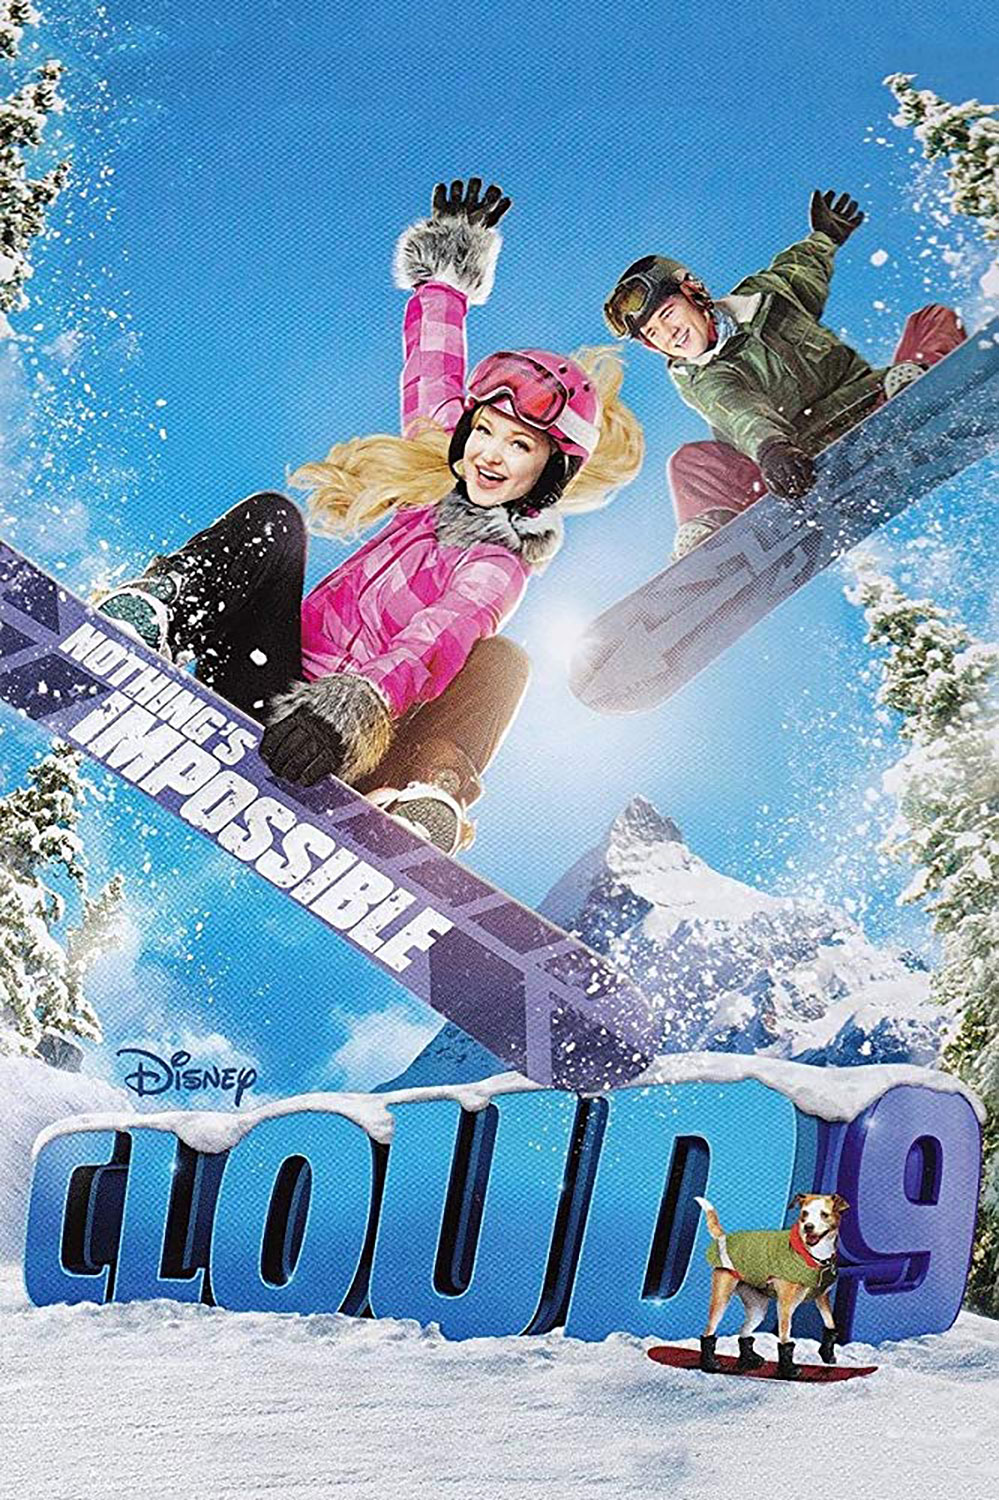 Affiche Poster cloud 9 ultime figure disney channel